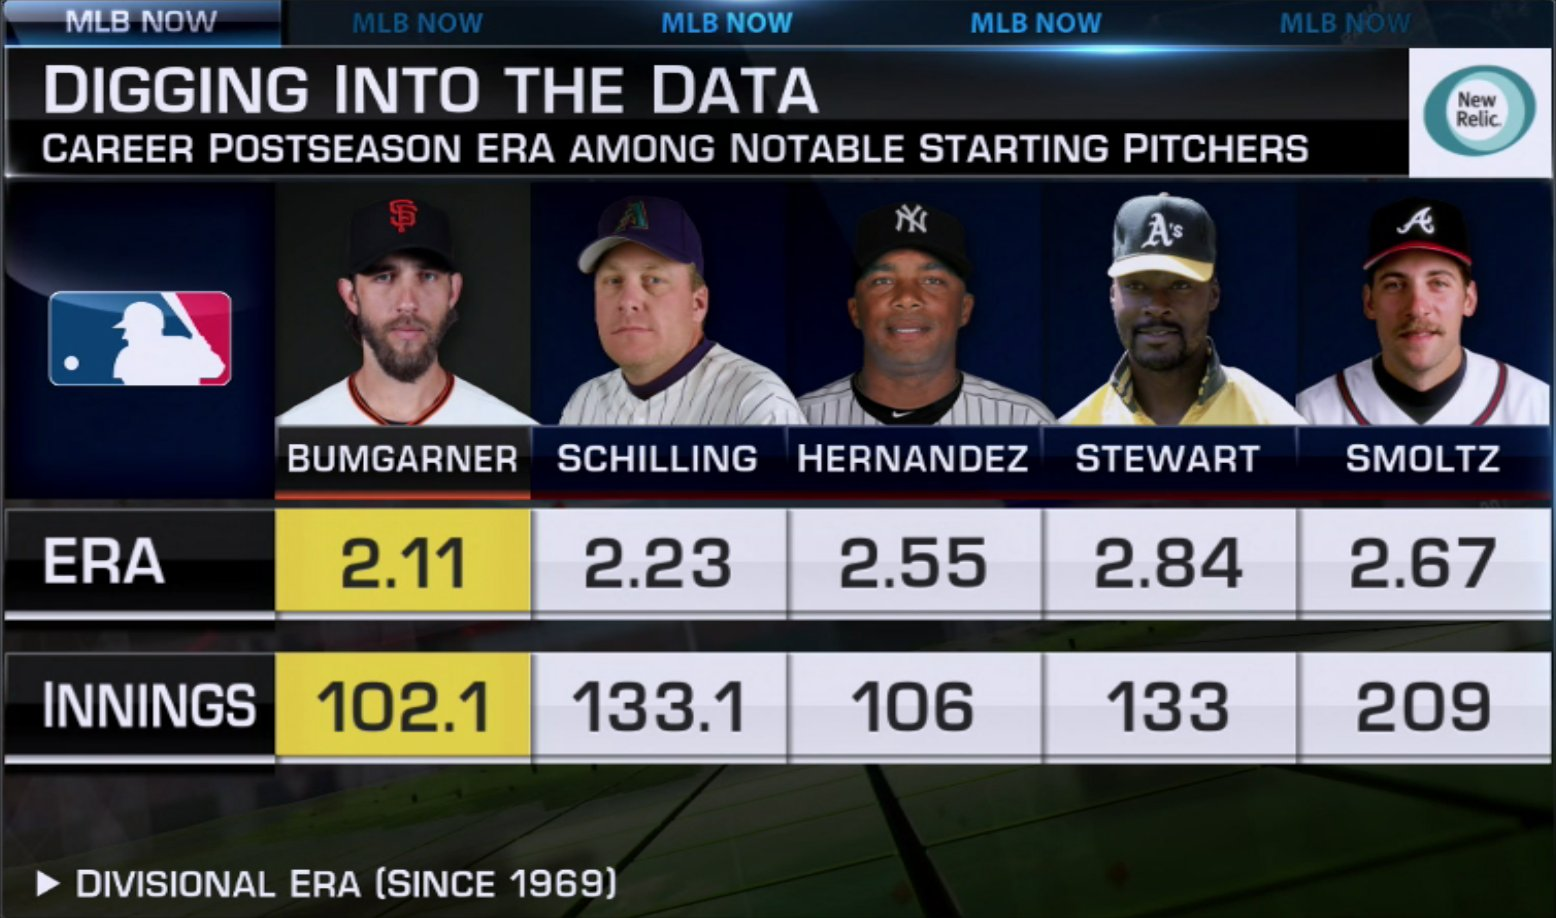 Is #MadBum the #Postseason ��? #MLBNow https://t.co/3iMw8r0bdr